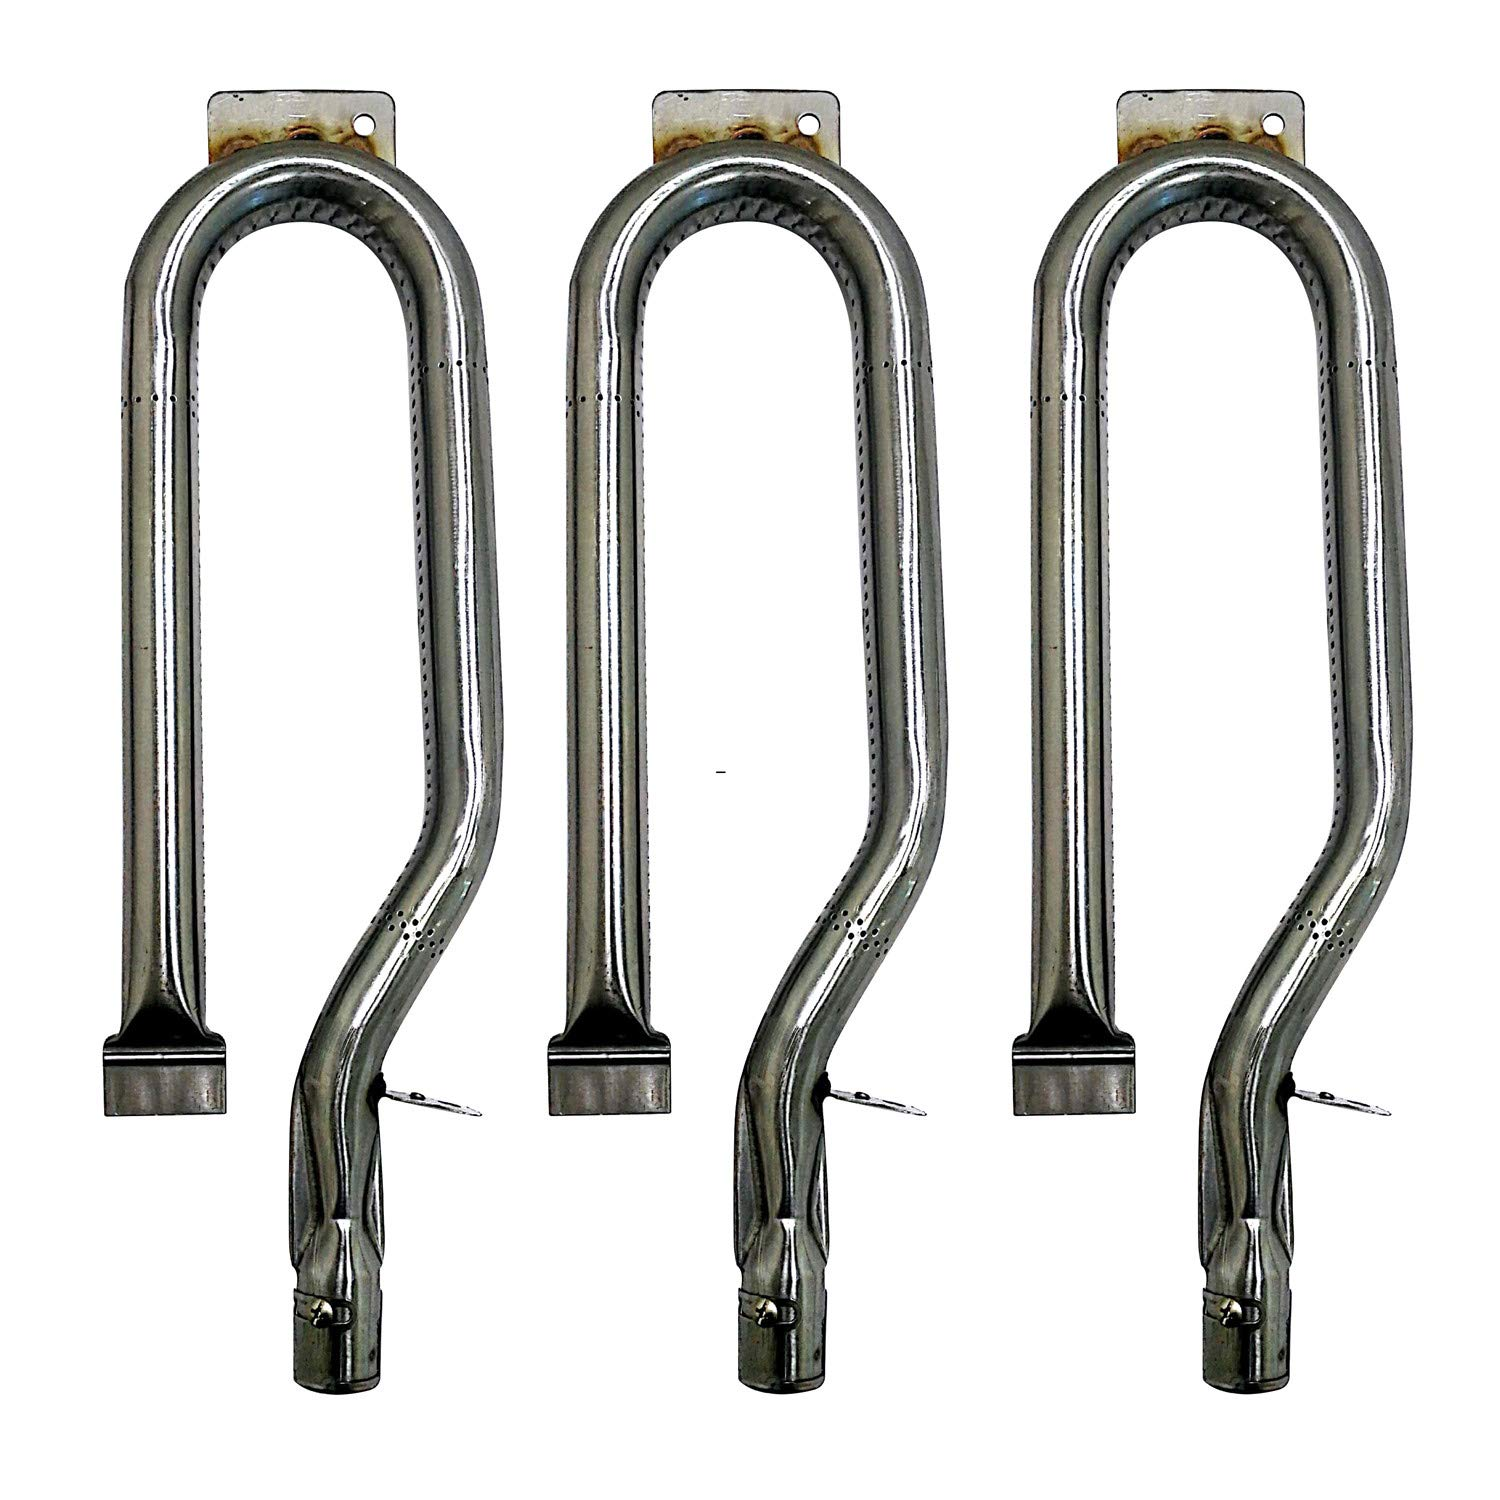 16431 (3-pack) Universal BBQ Barbecue Replacement Stainless Steel Pipe Tube Burner for BBQ Pro, Lowes Model Grills (15 1/2